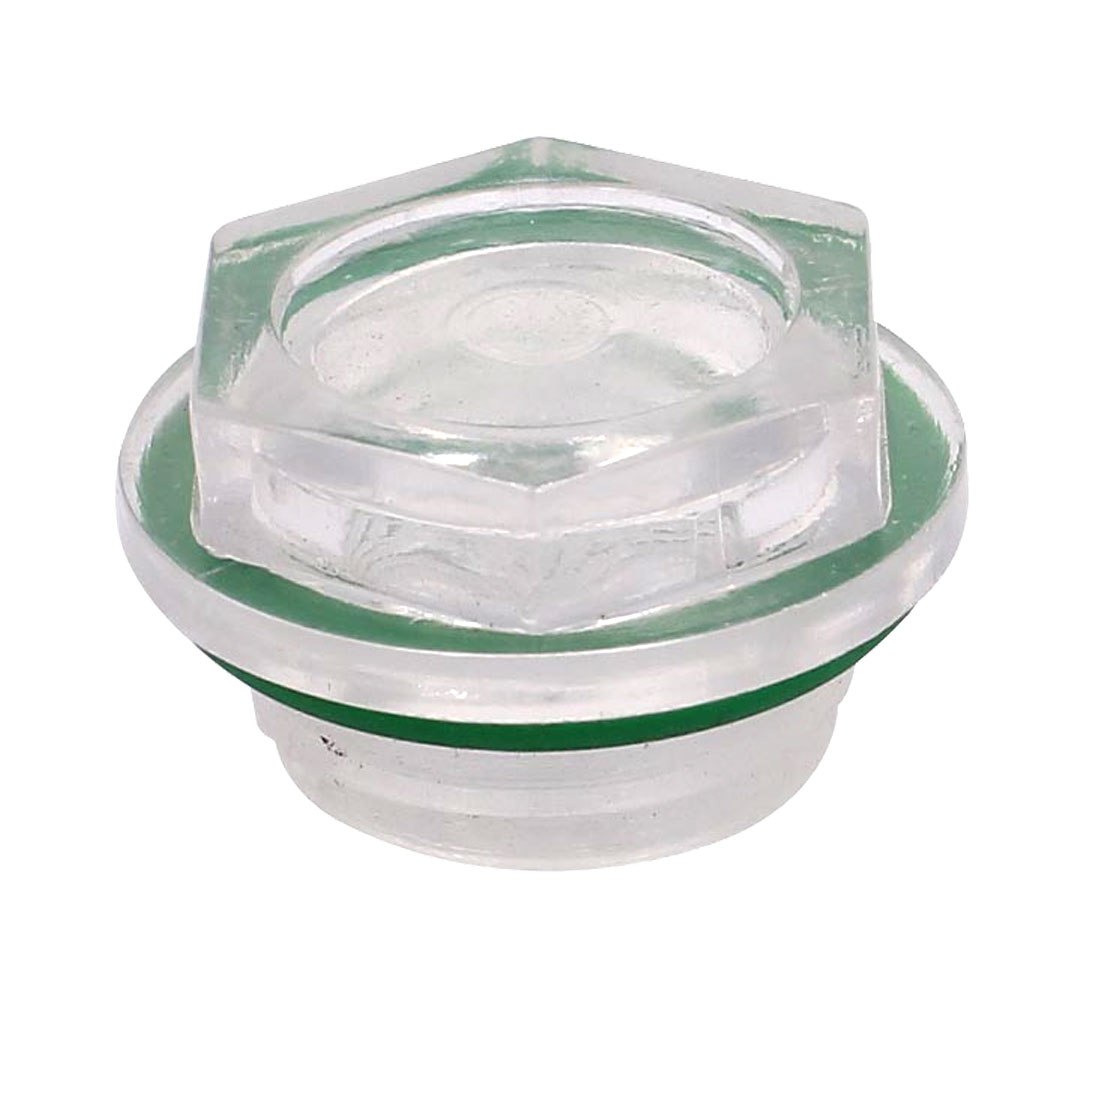 Green Rubber Washer Clear Plastic Oil Level Sight Glass 25mm for Air Compressor